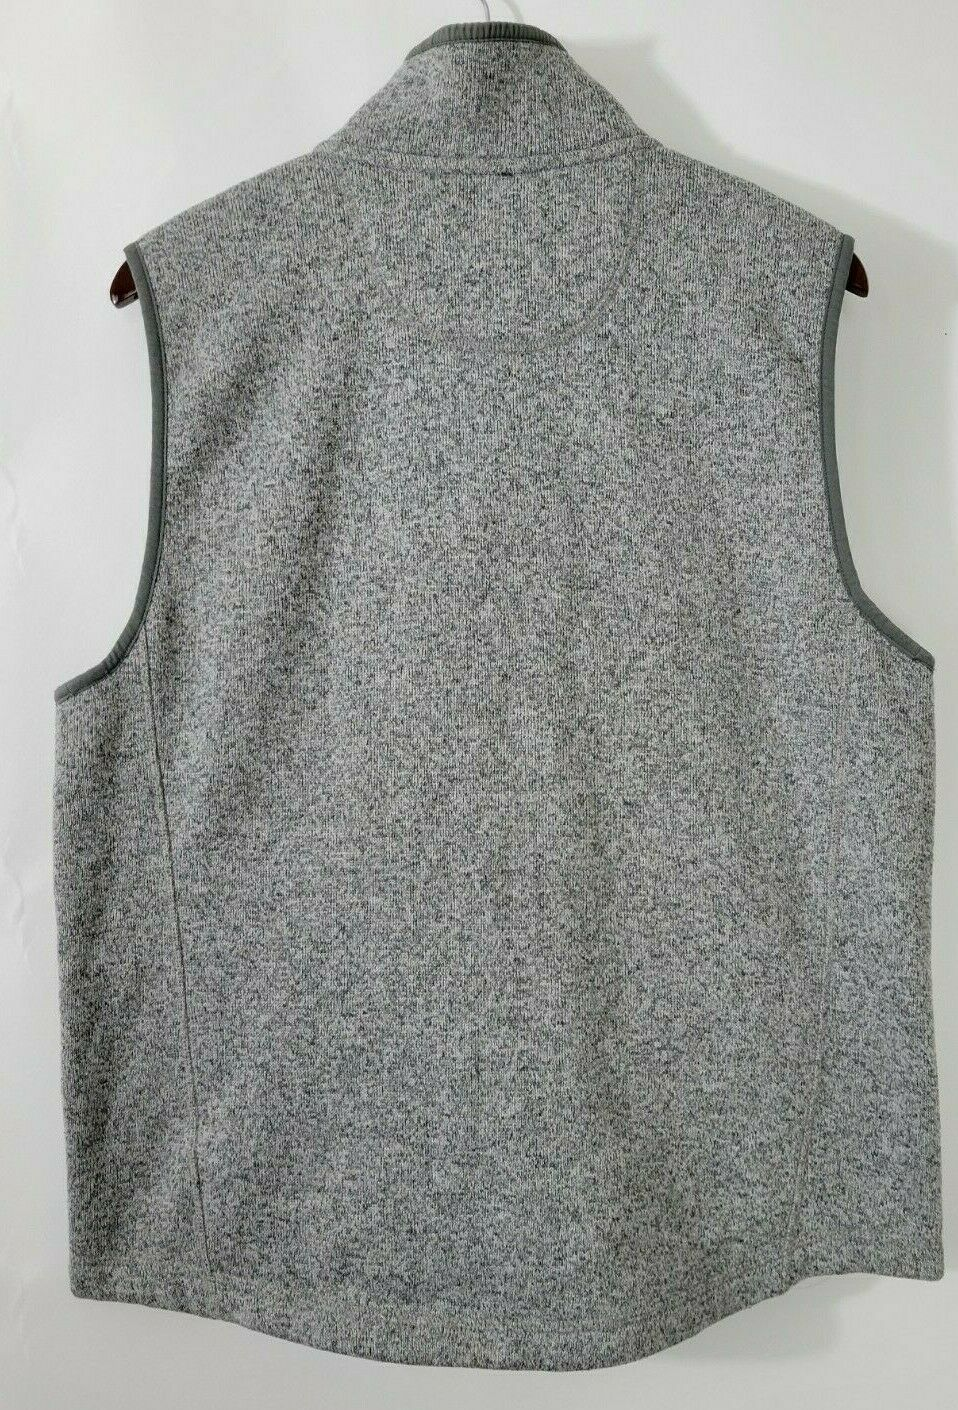 L.L. BEAN Sweater Vest Slightly Fitted Gray Heath… - image 2